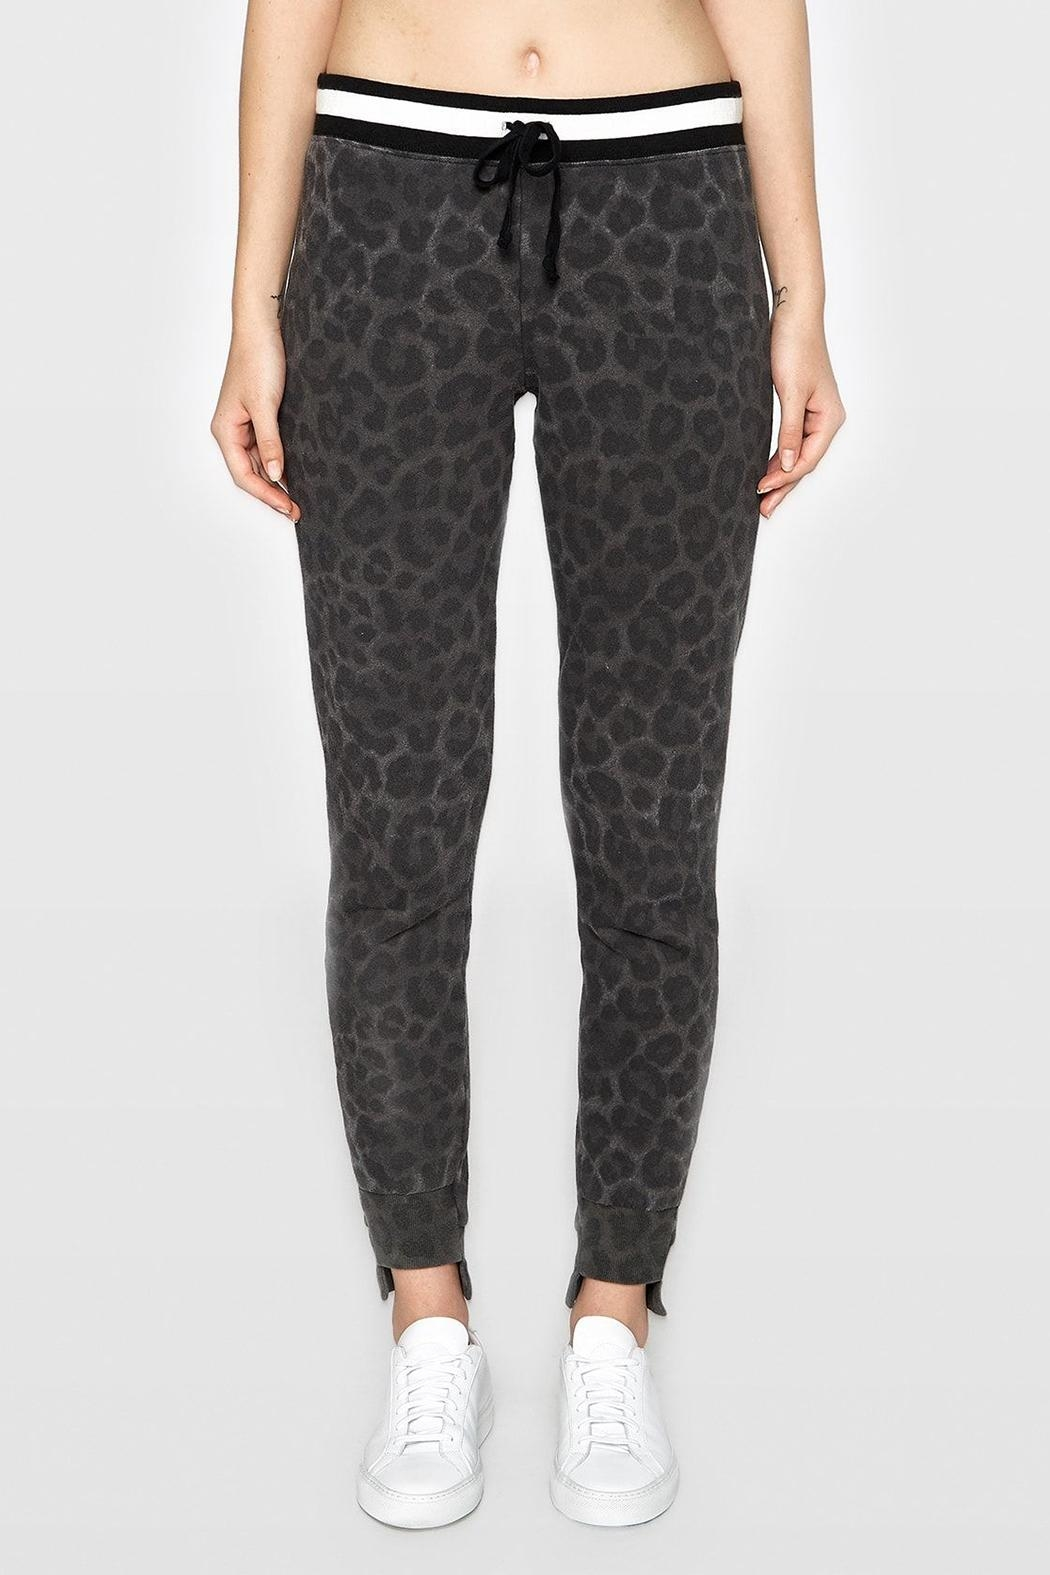 Pam & Gela Leopard Off-Set Cuff - Front Cropped Image